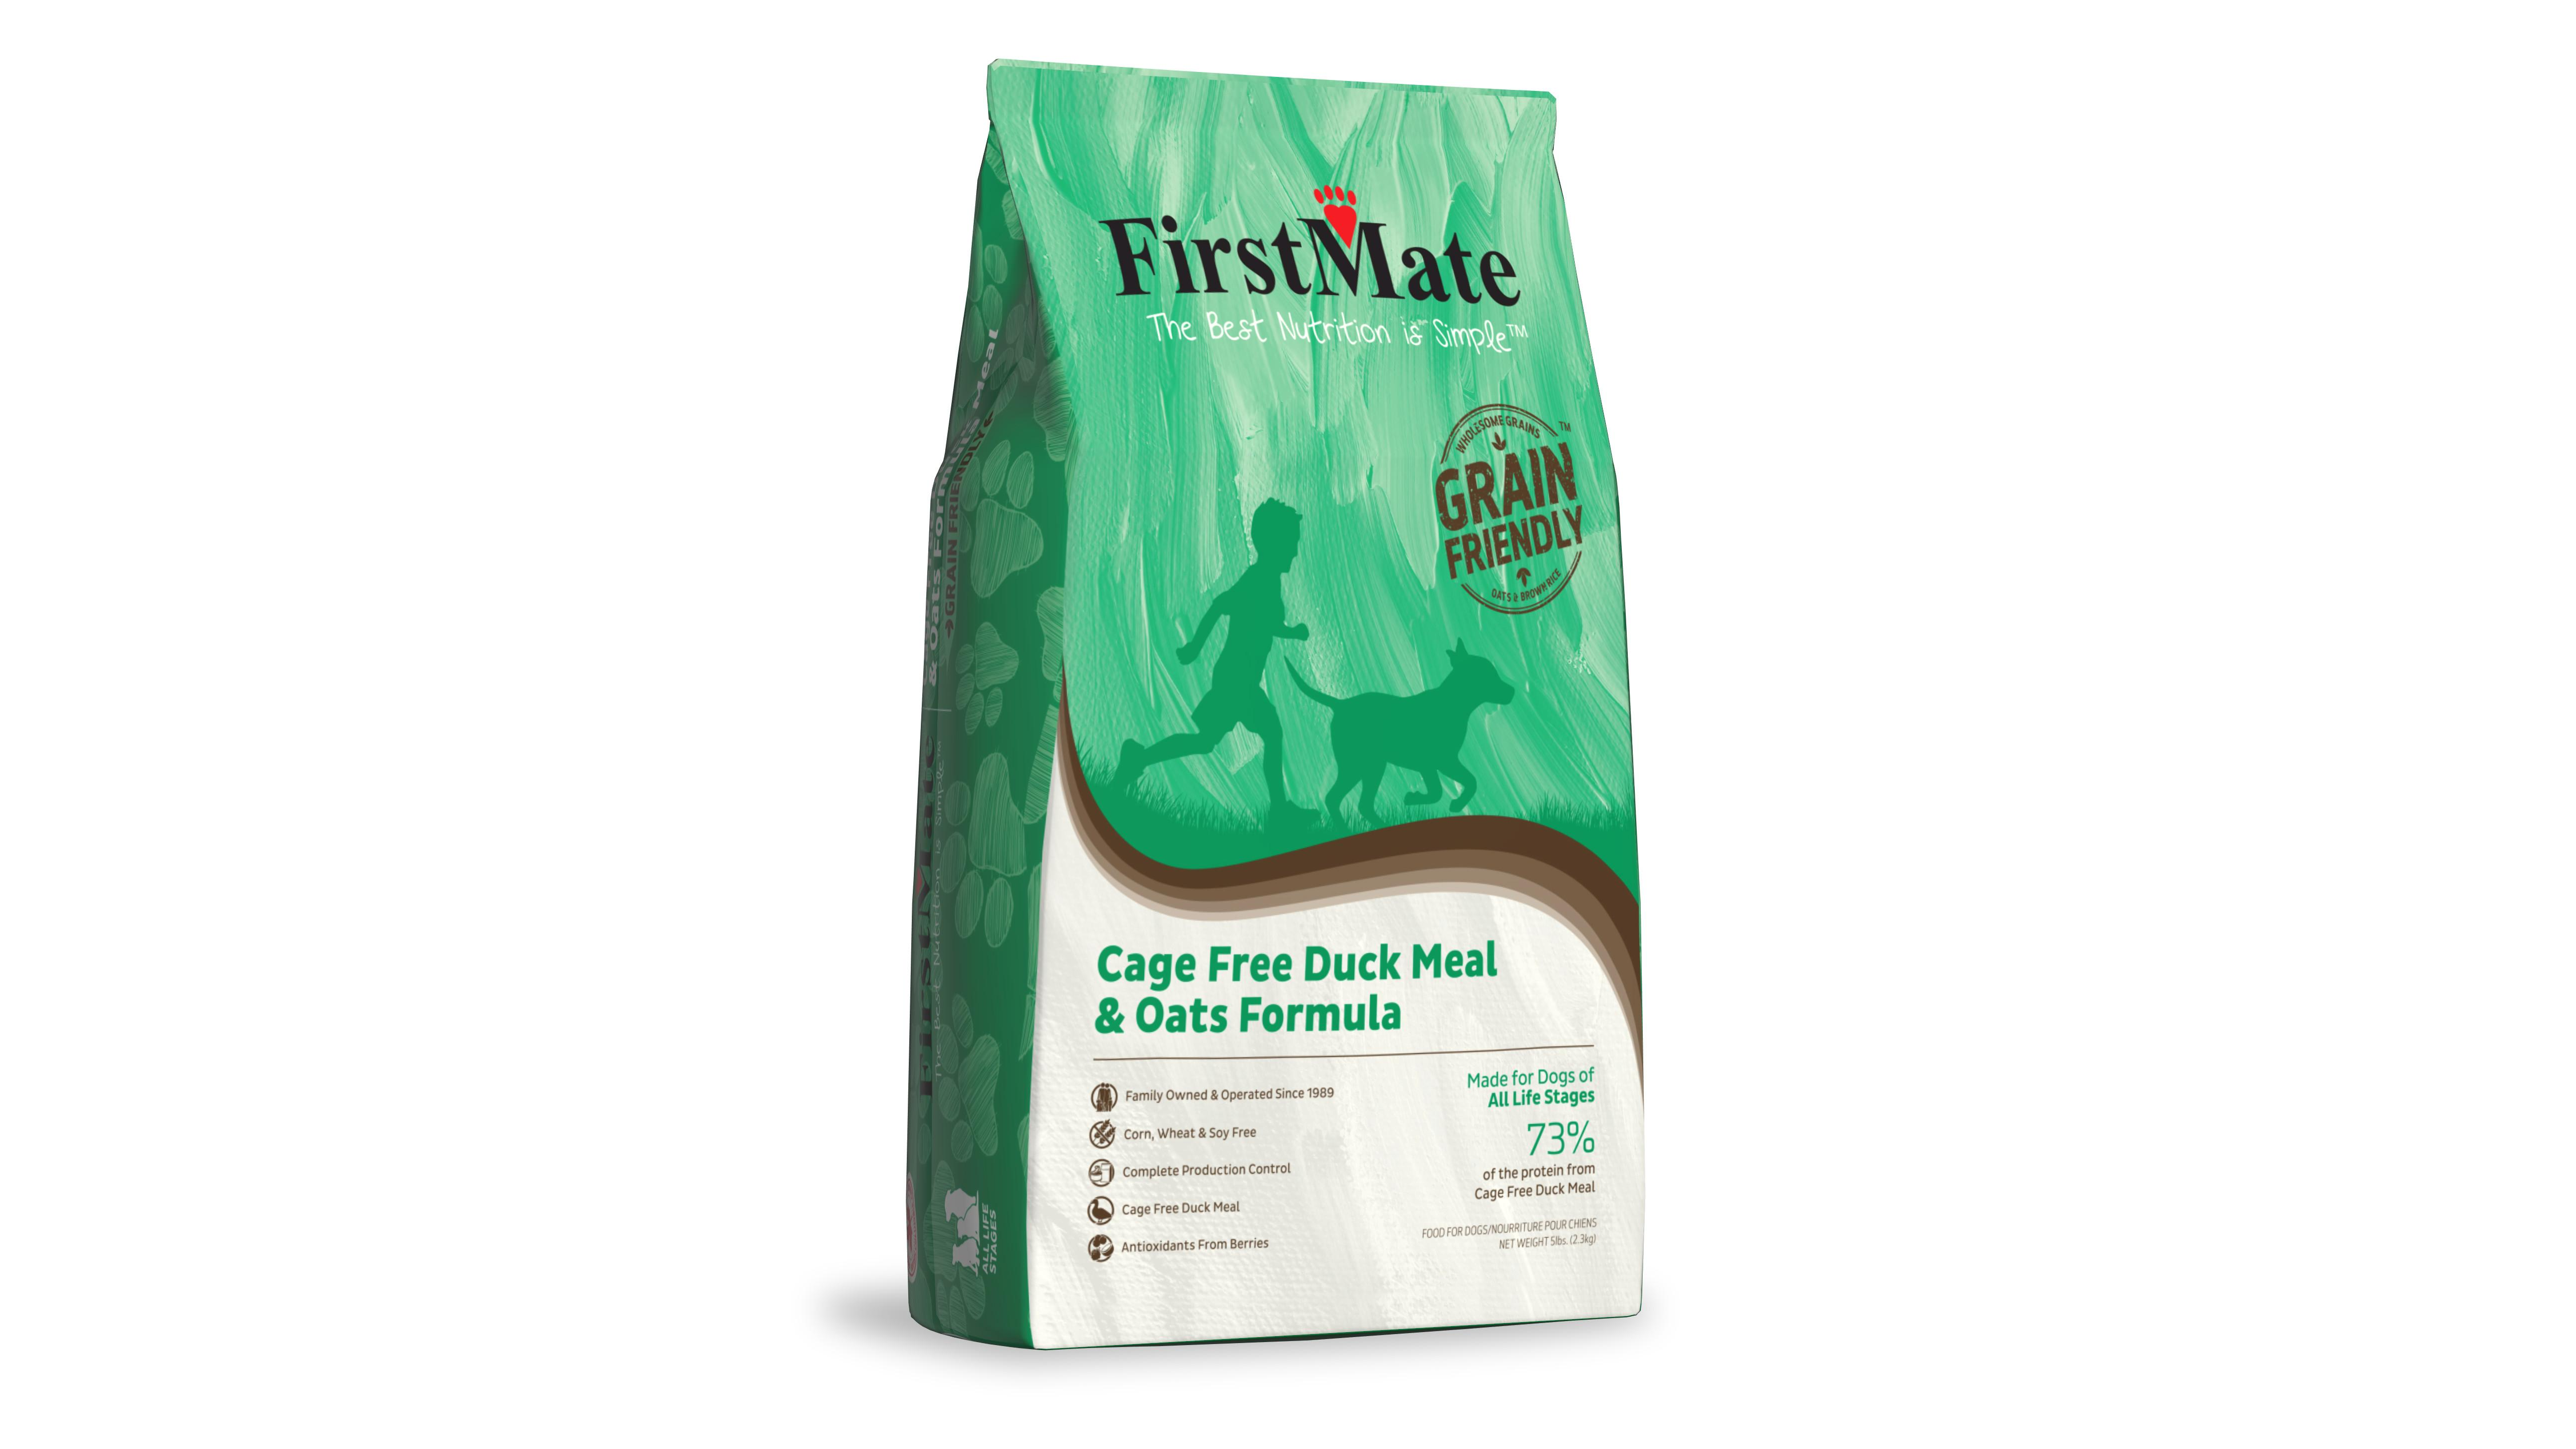 FirstMate Cage-Free Duck Meal & Oats Grain Friendly Dry Dog Food, 5-lb